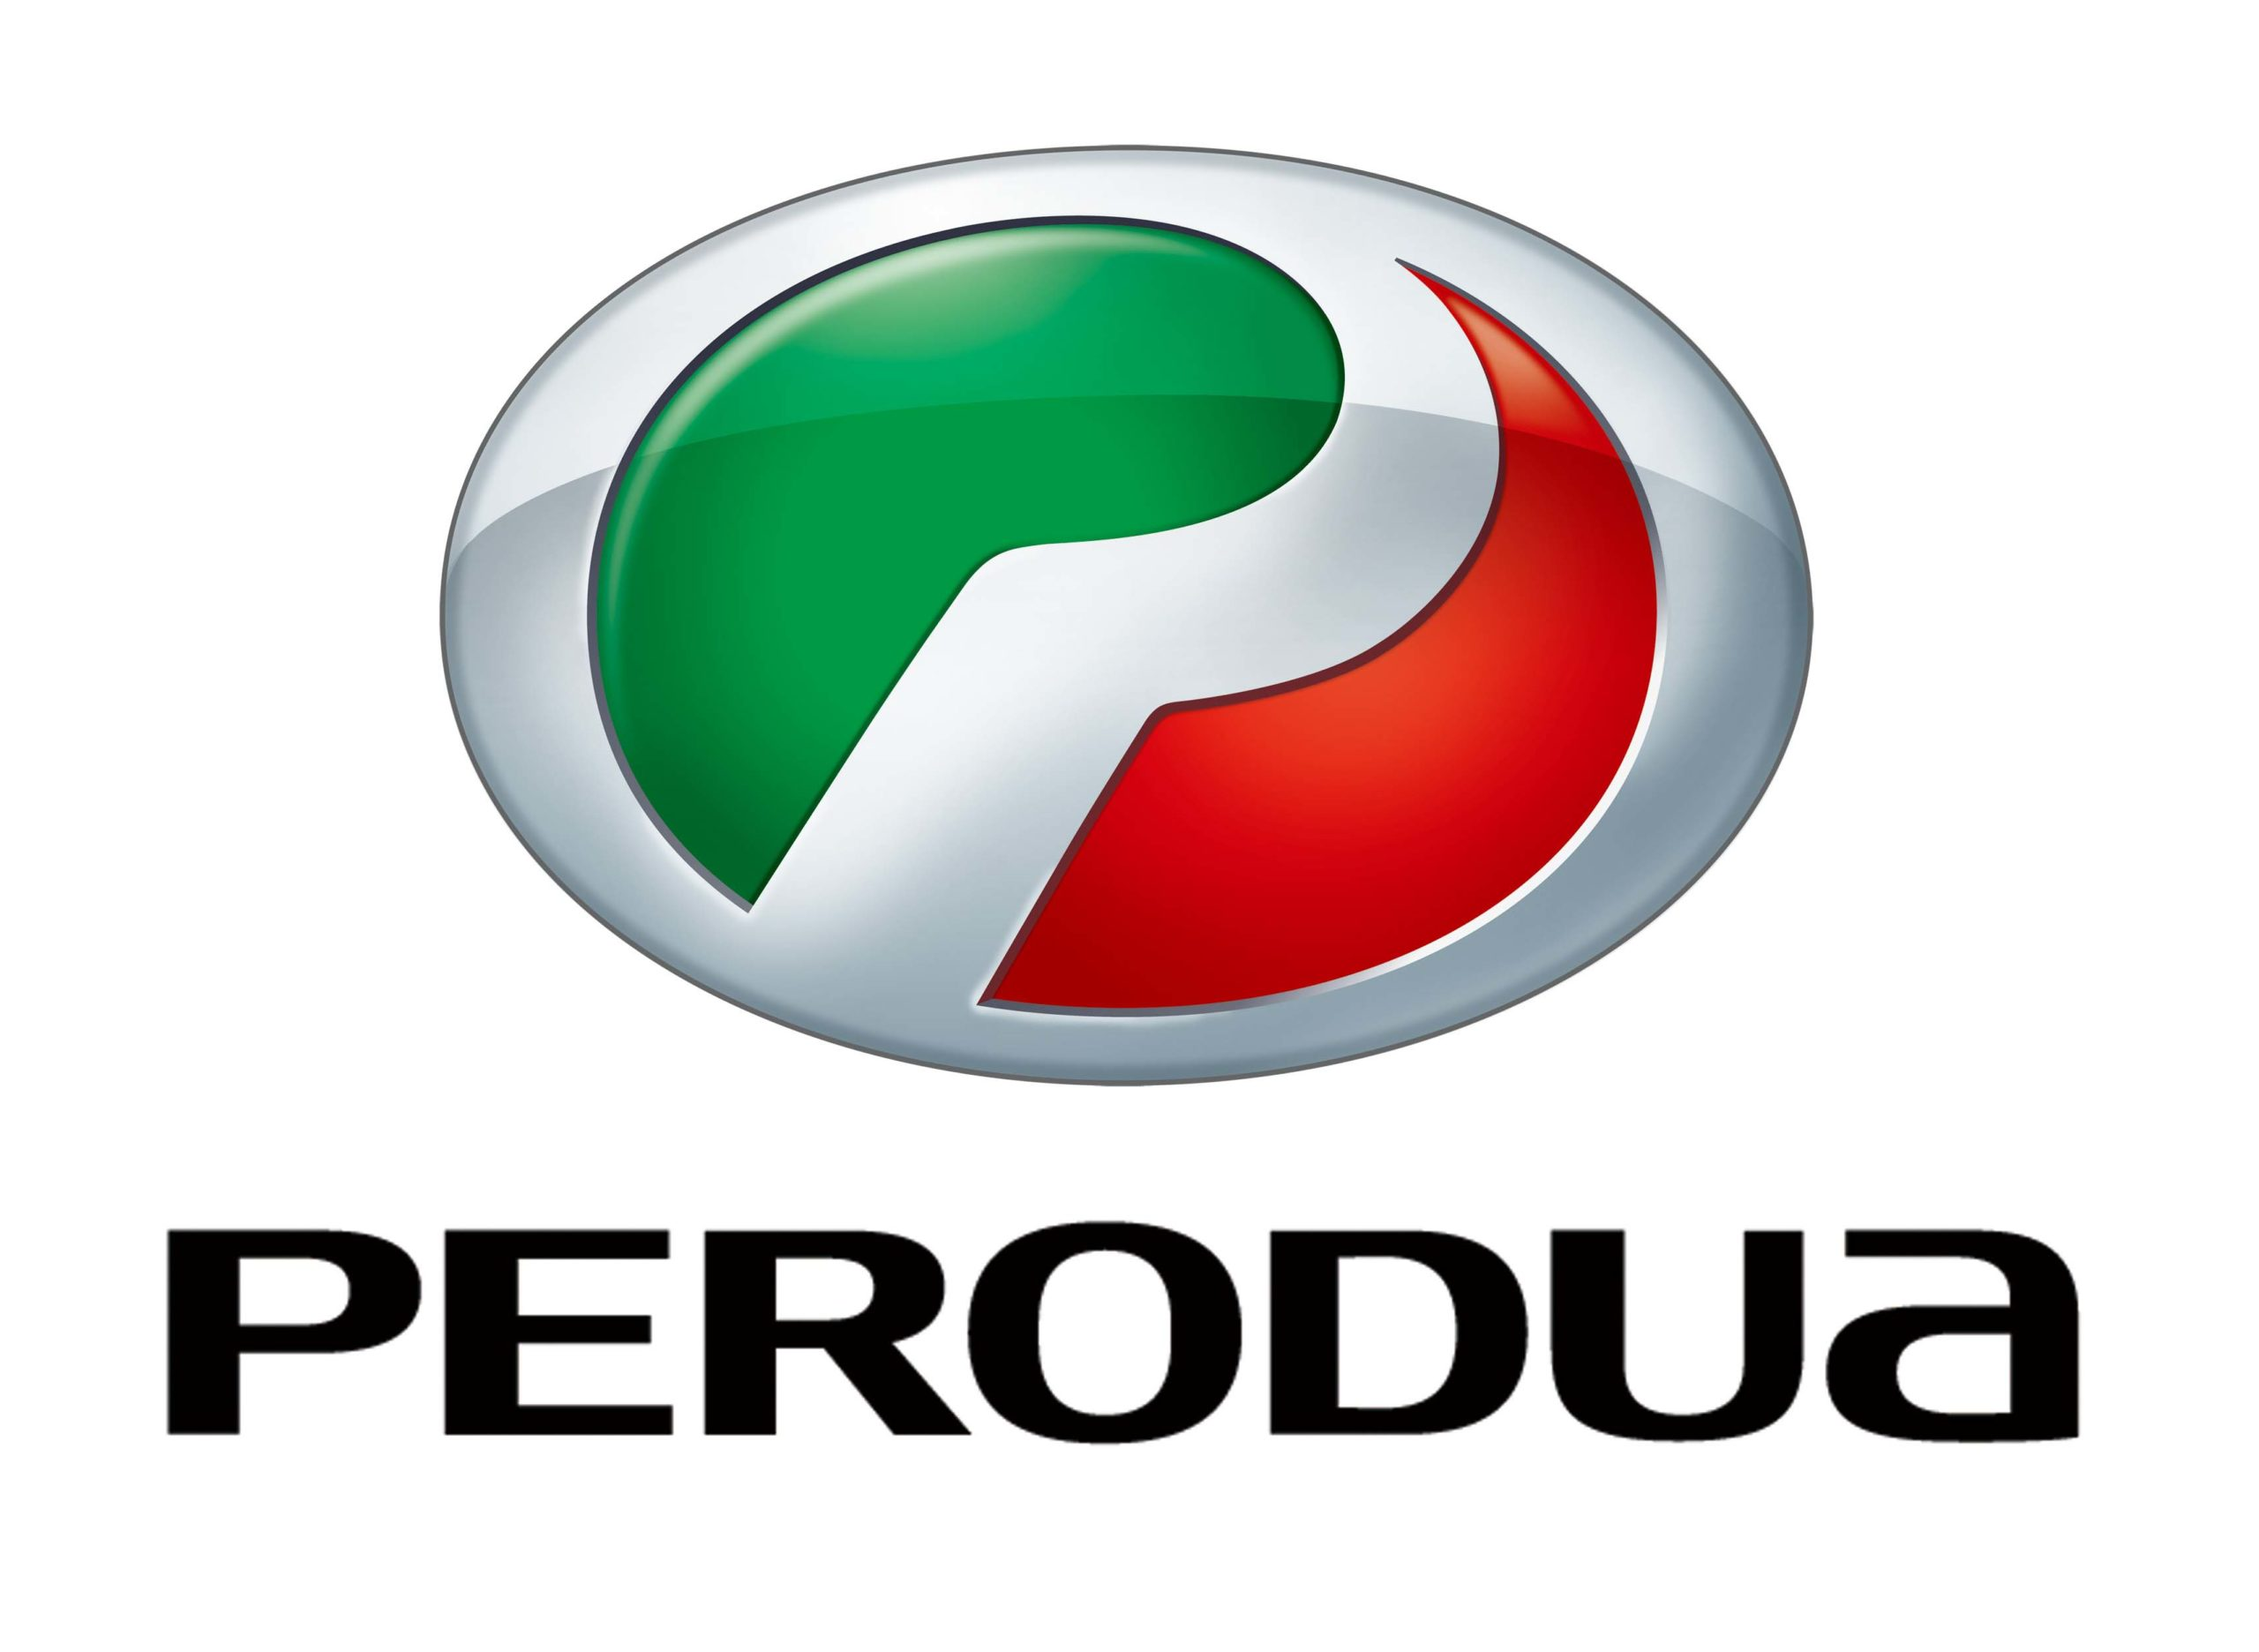 PERODUA UK LIMITED